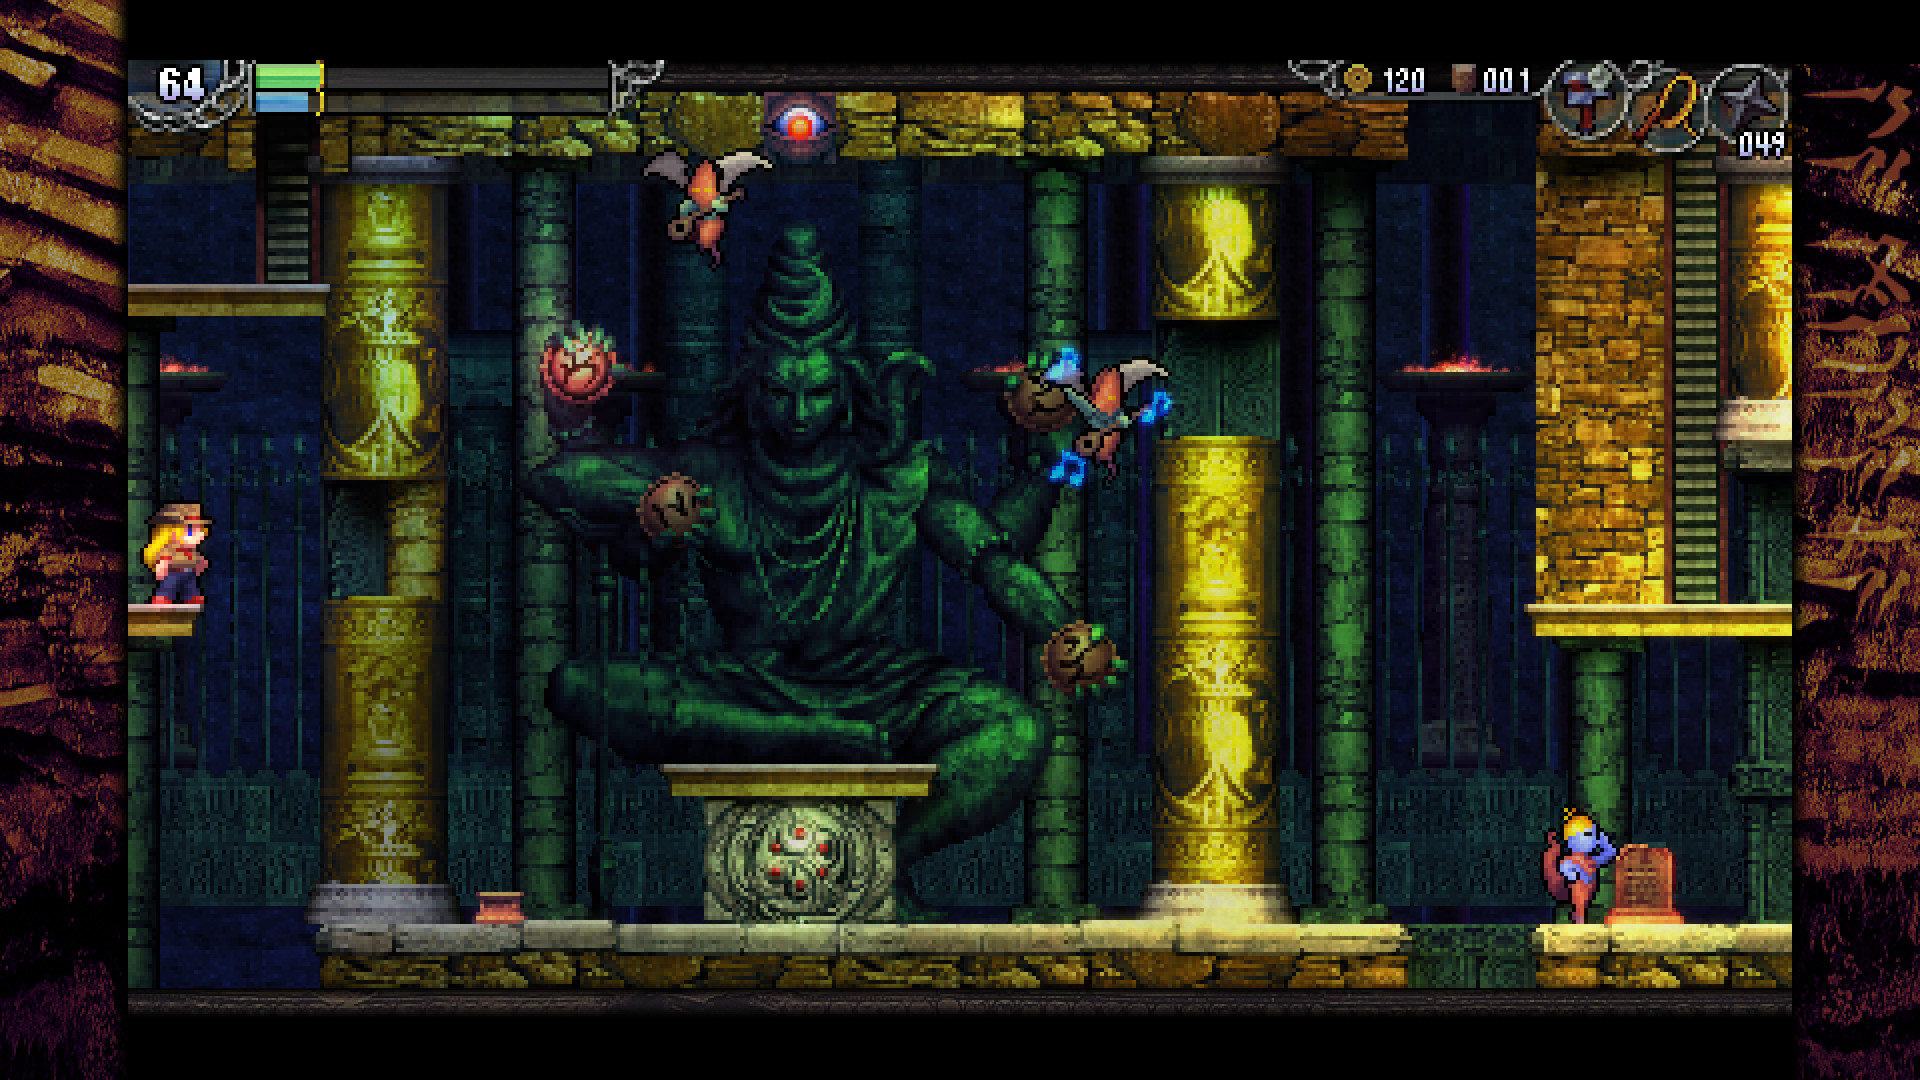 La-Mulana 2 is coming to Xbox One to terrorize and frustrate console players screenshot